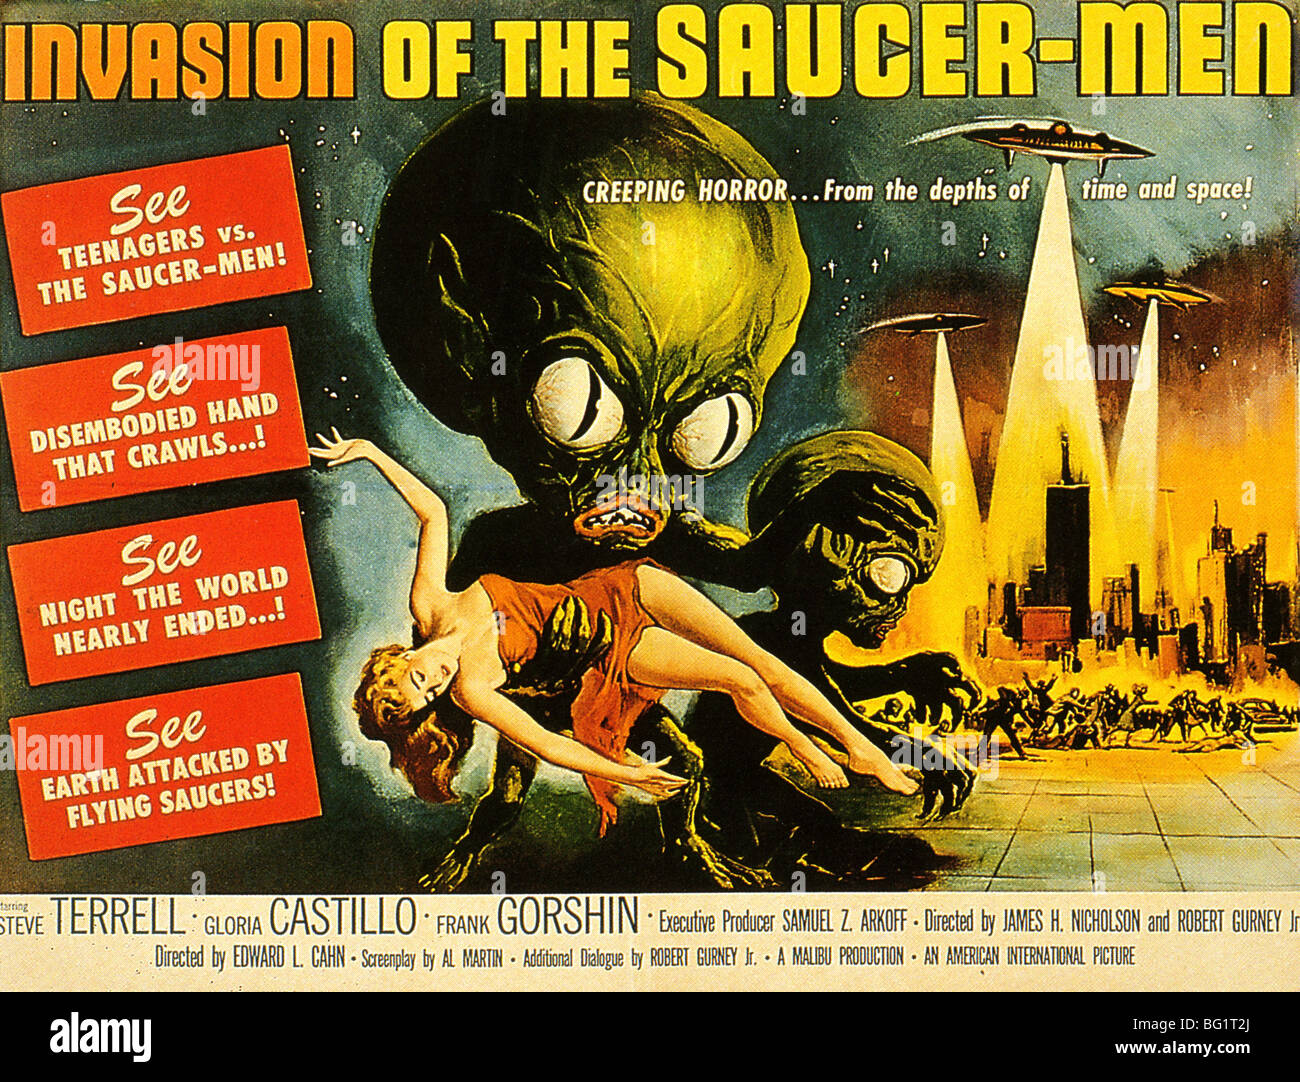 INVASION OF THE SAUCER-MEN Poster for 1957 American International Pictures film - Stock Image